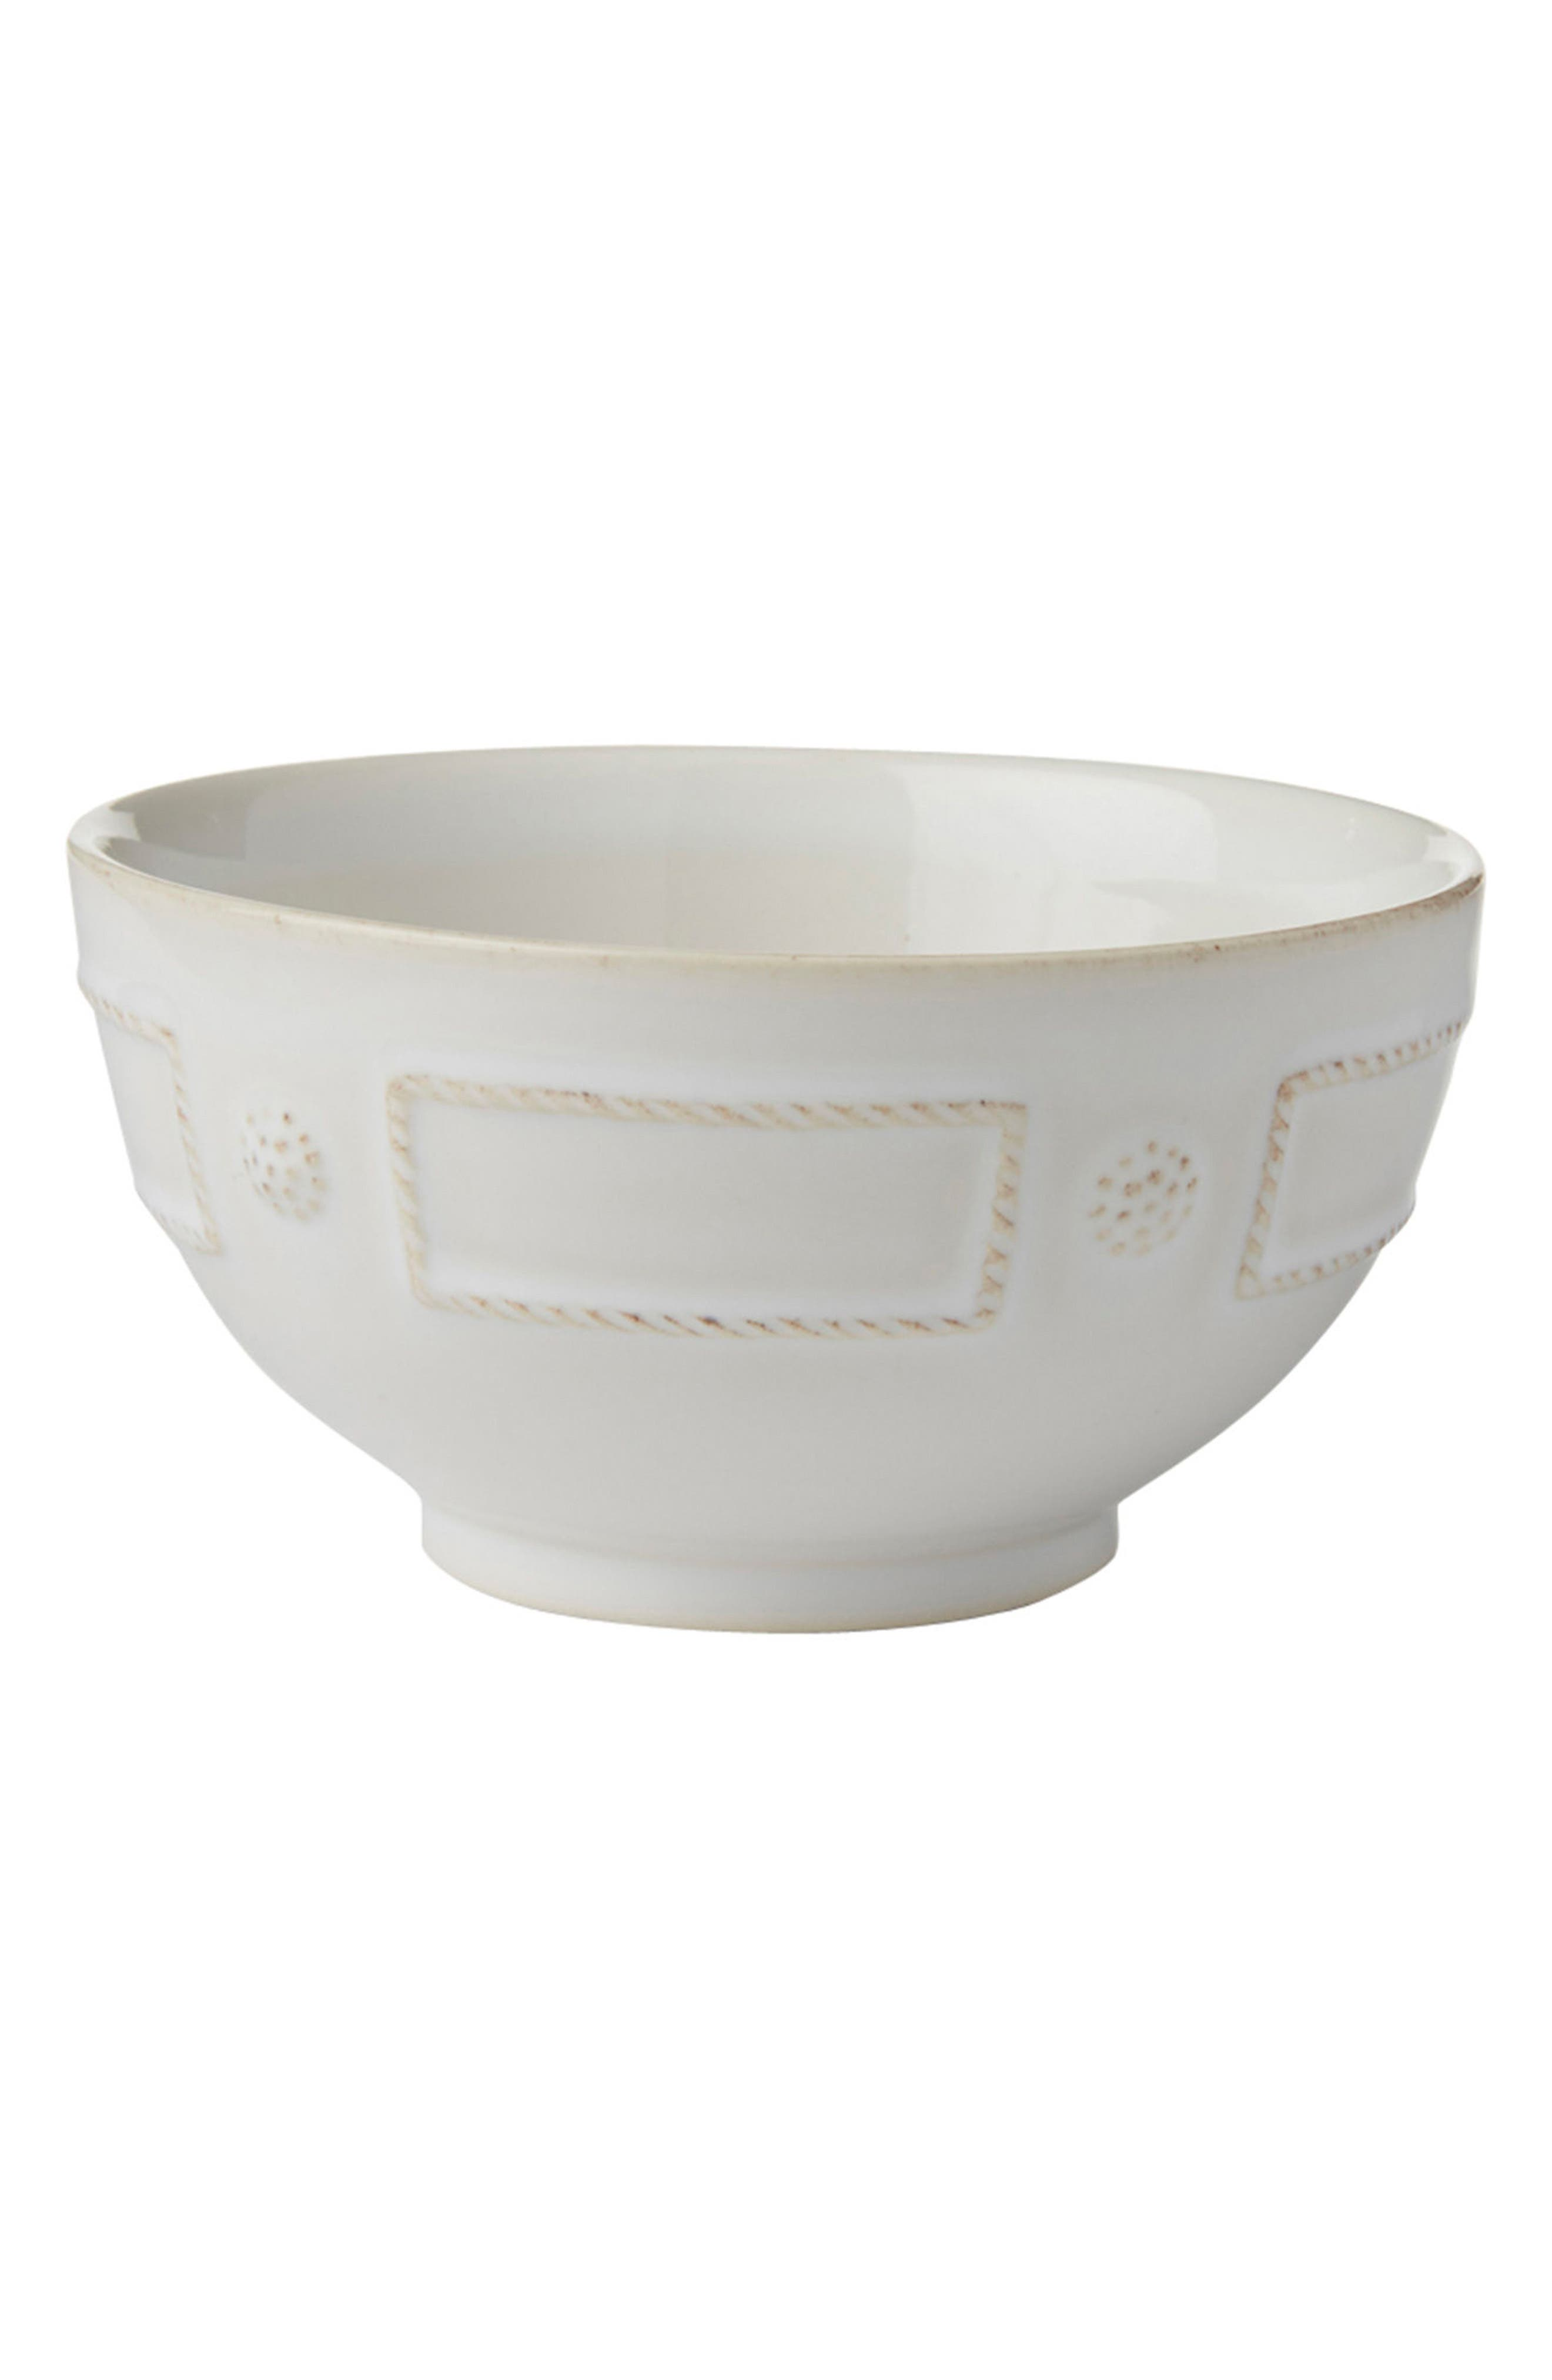 Berry & Thread French Panel Ceramic Cereal Bowl,                             Main thumbnail 1, color,                             Whitewash